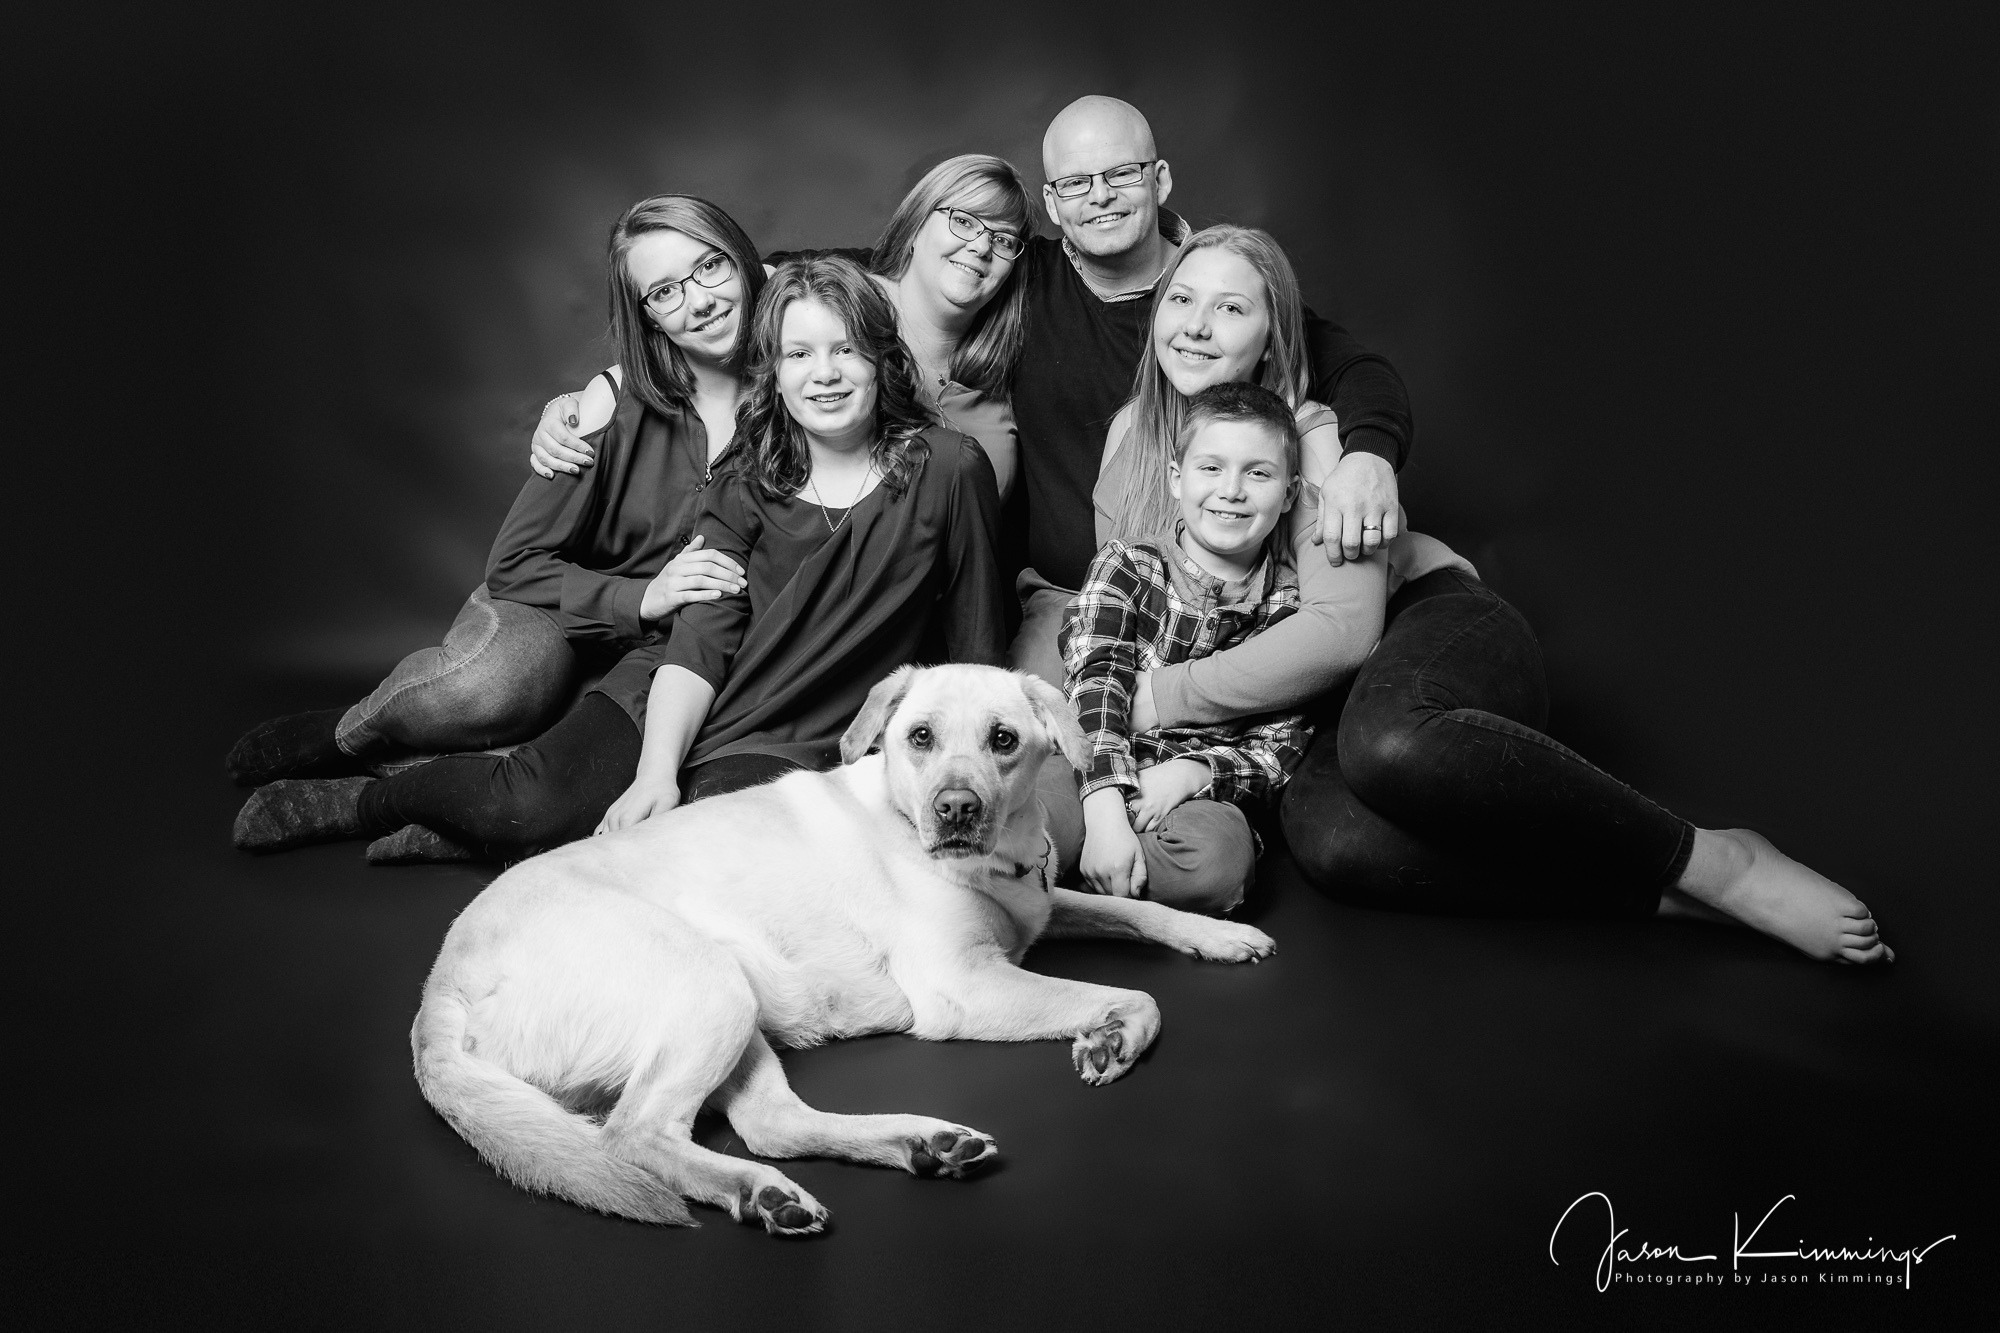 family-studio-photography-edinburgh-glasgow-west-lothian-6.jpg